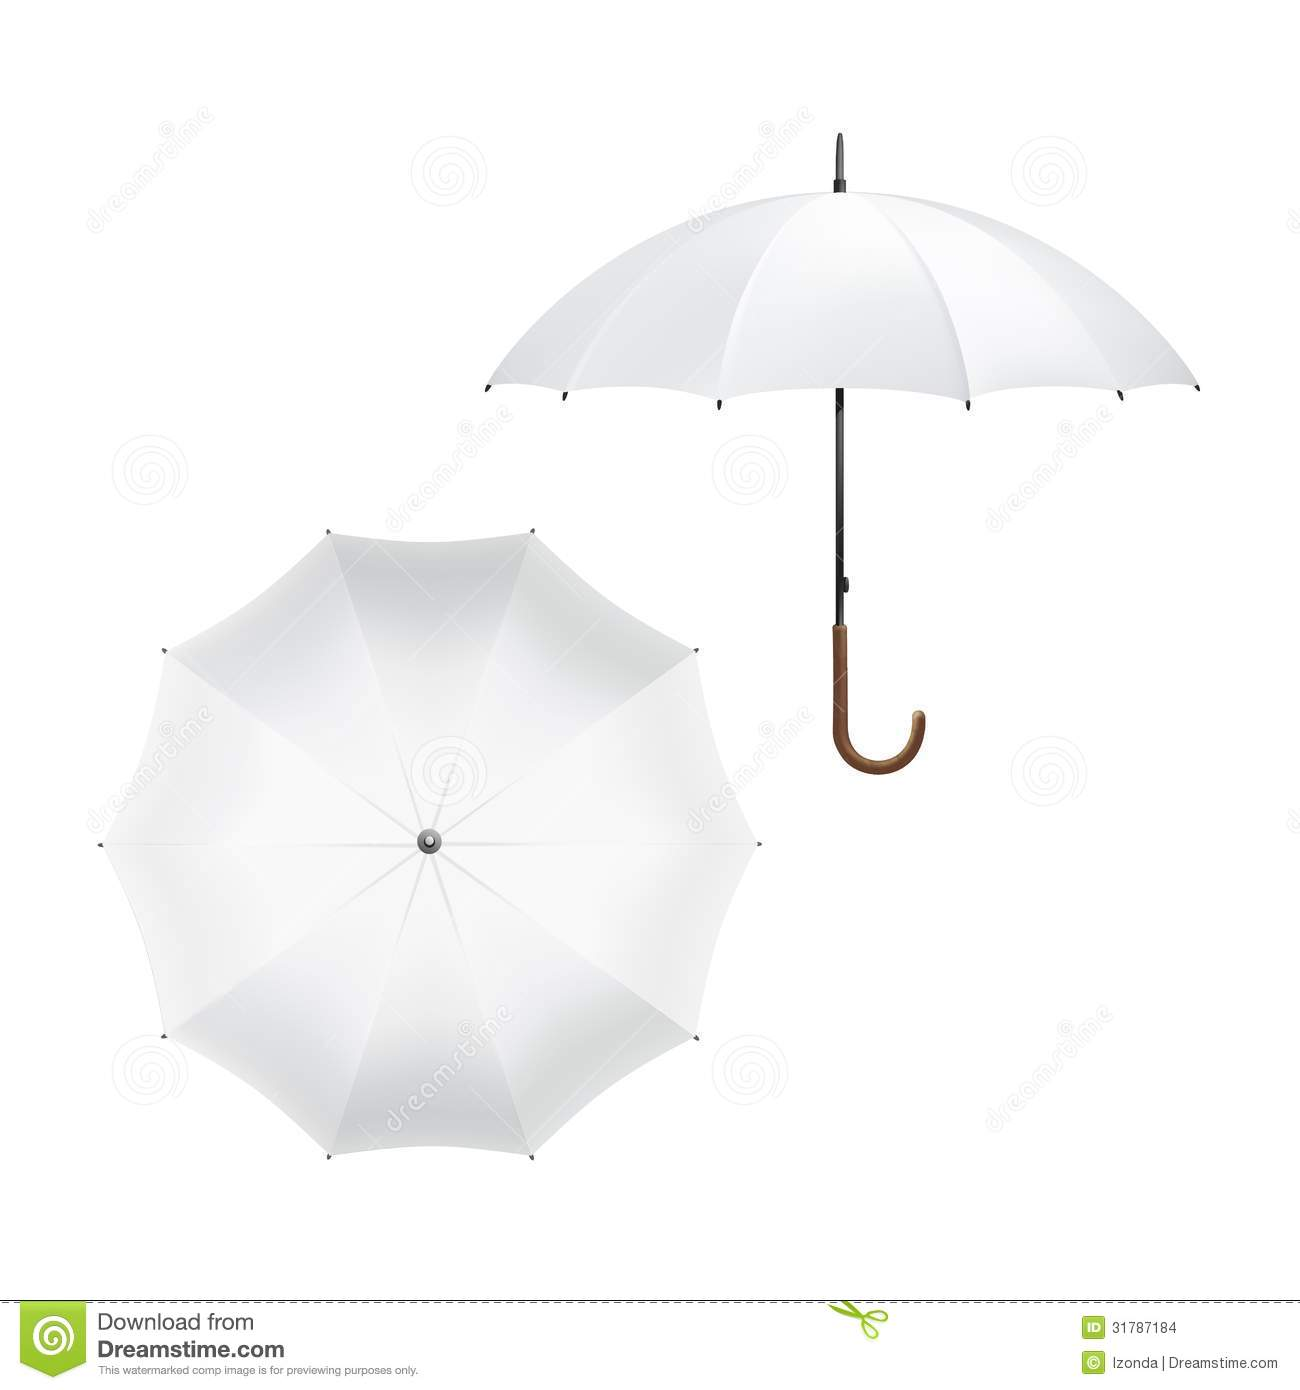 Vector Illustration Of Blank White Umbrella Stock Vector